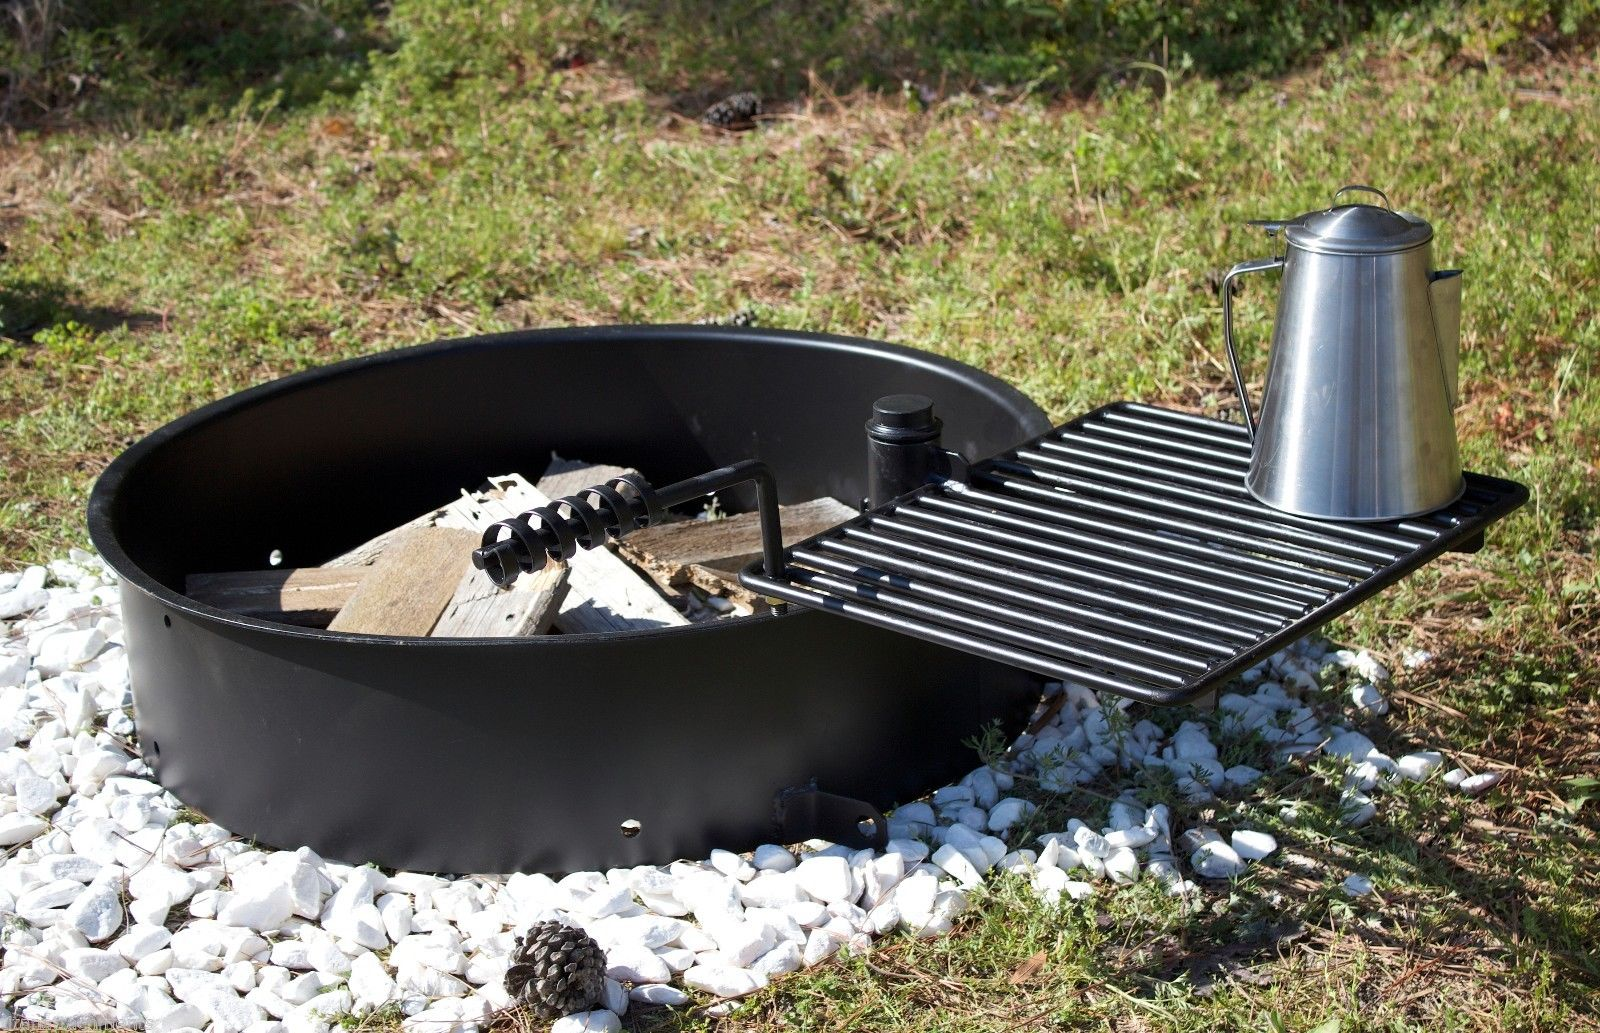 24 Steel Fire Ring With Cooking Grate Campfire Pit Park